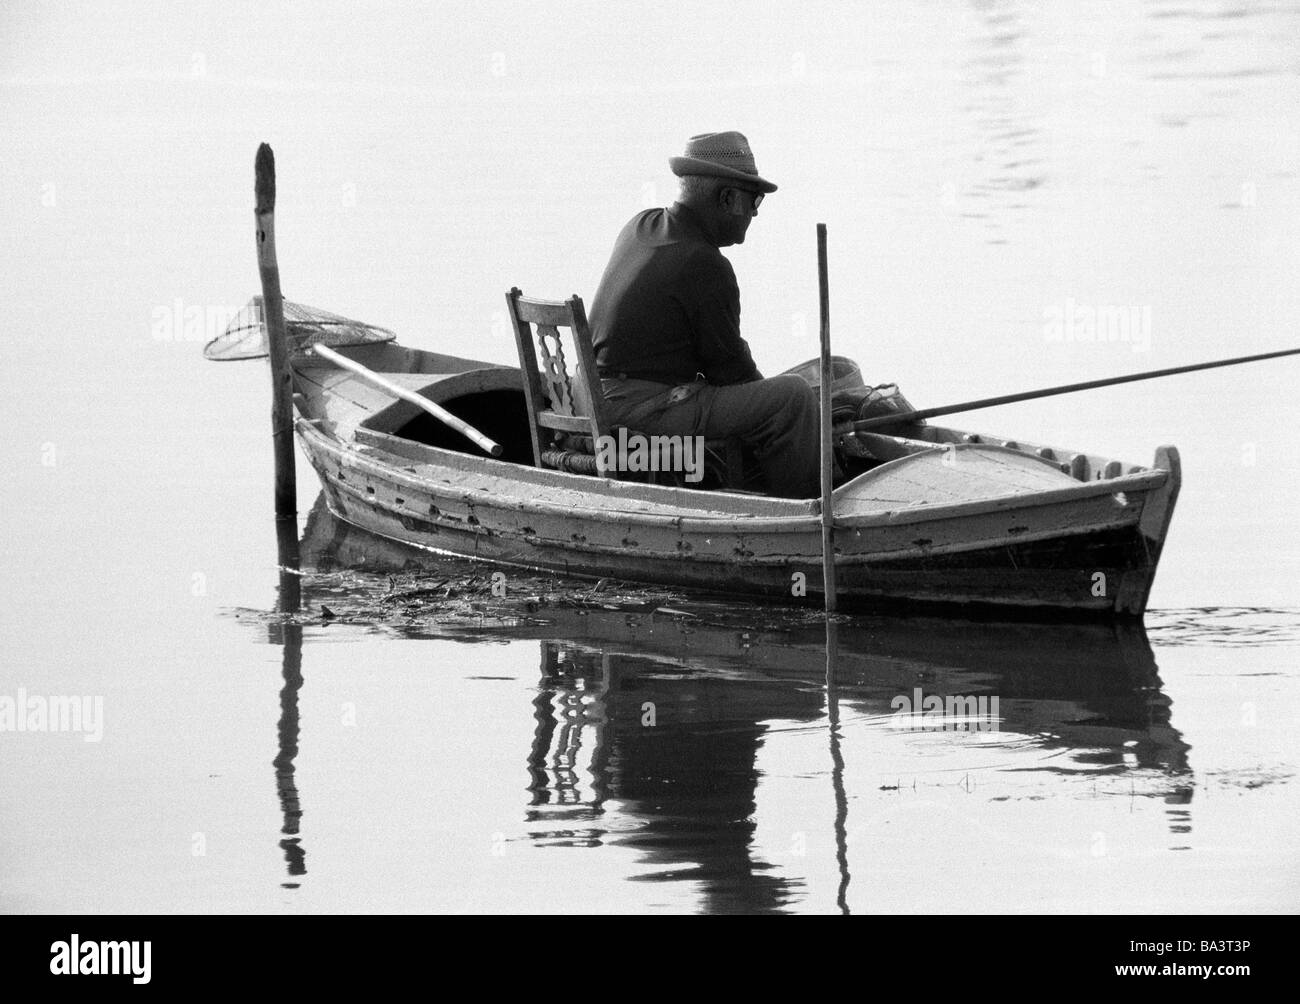 Seventies, black and white photo, hobby, fishing, angler sits in a boat casting for fish, backlight, silhouette, - Stock Image